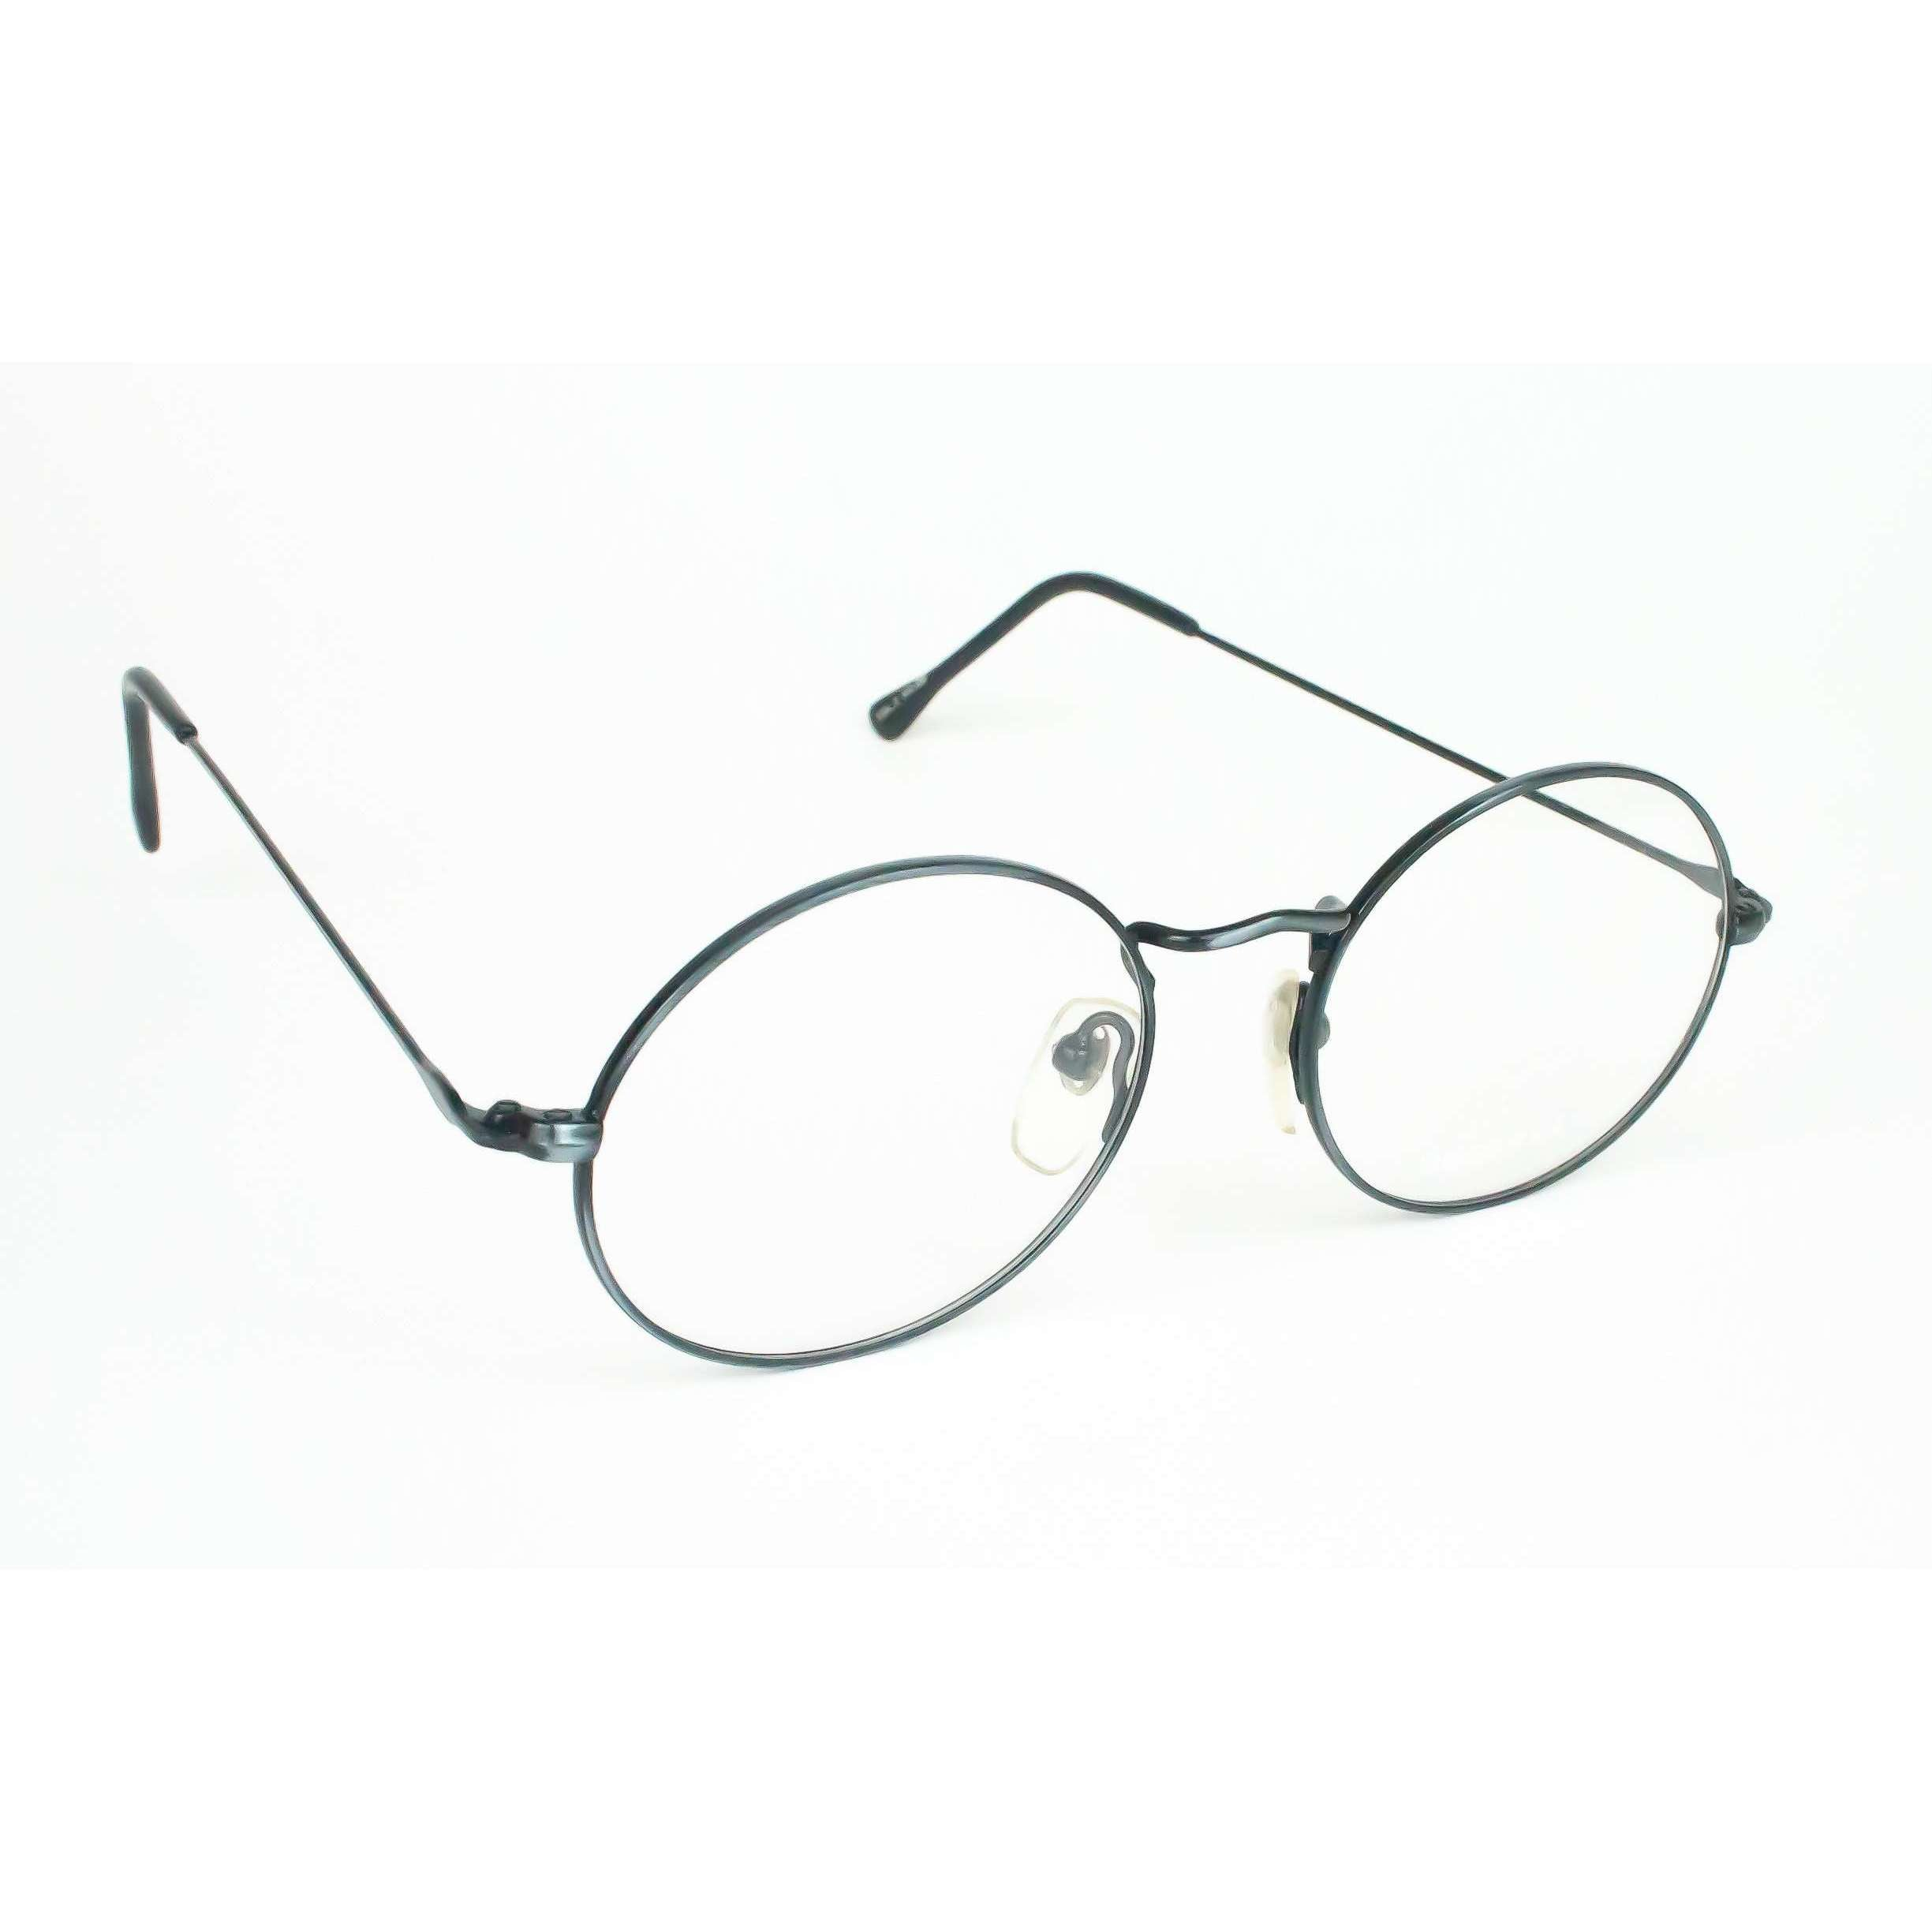 Observatory Model A932 - Gunmetal Round Glasses